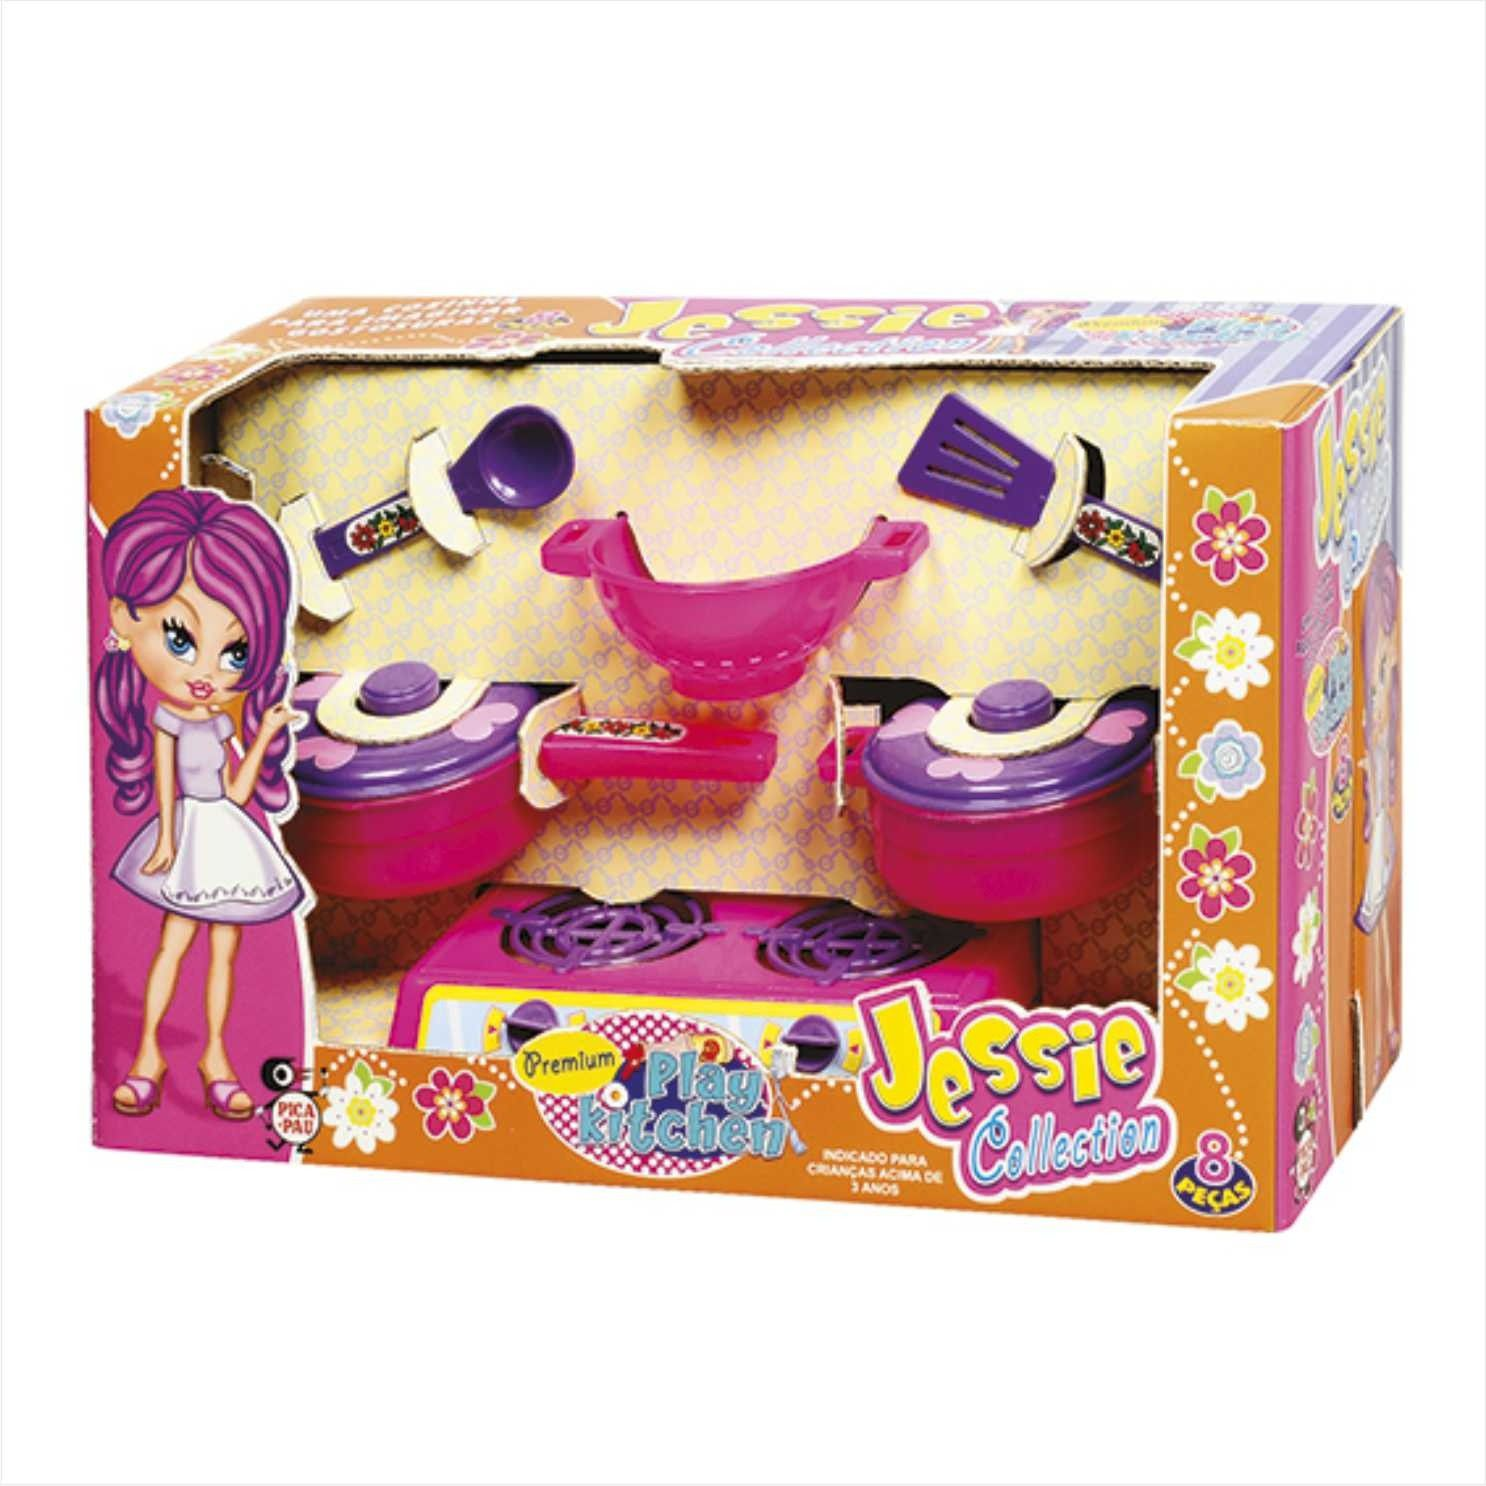 Kit Cozinha Premium Play Kitchen Jessie Collection - Pica Pau